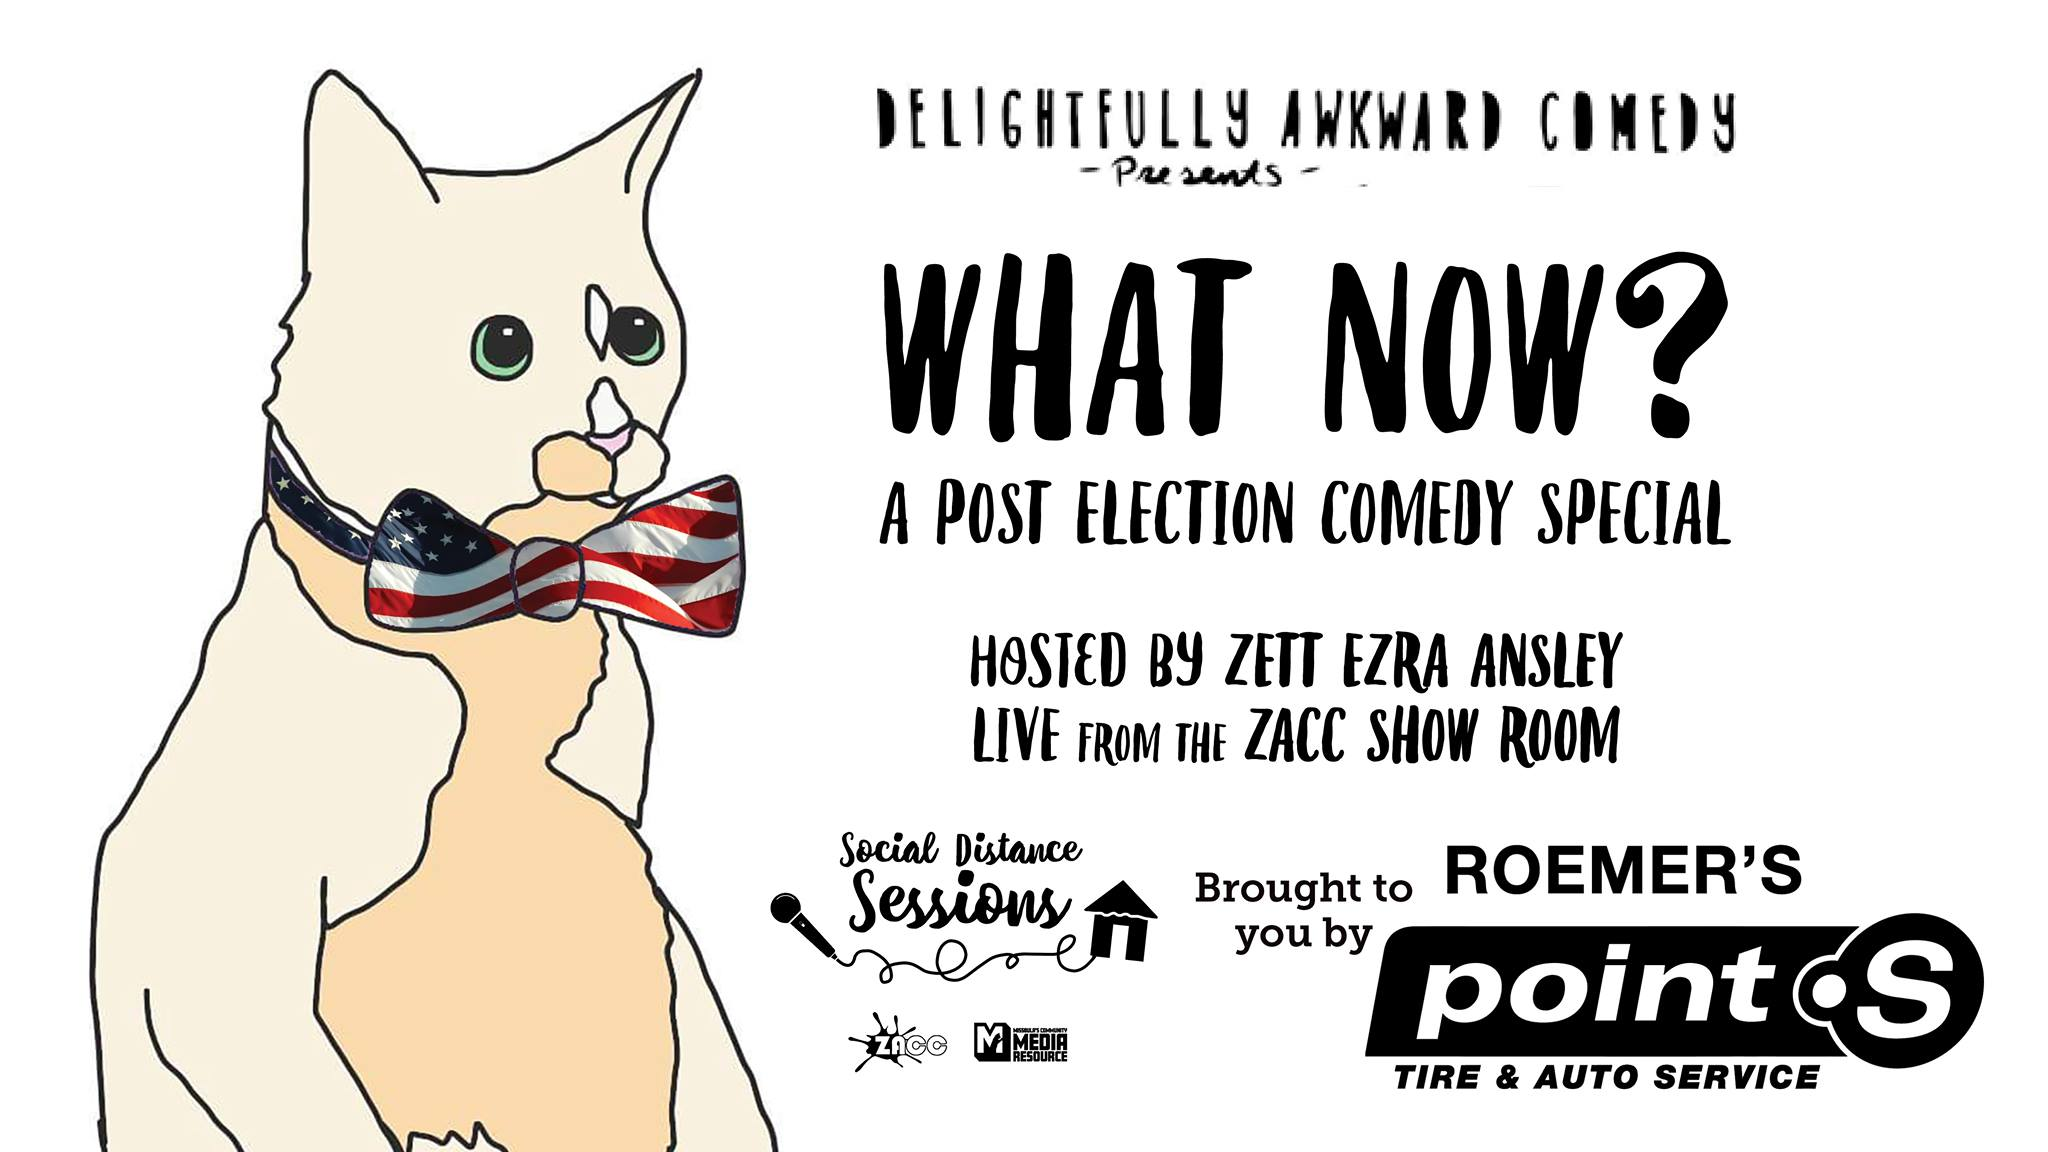 What Now? Post Election Comedy Special